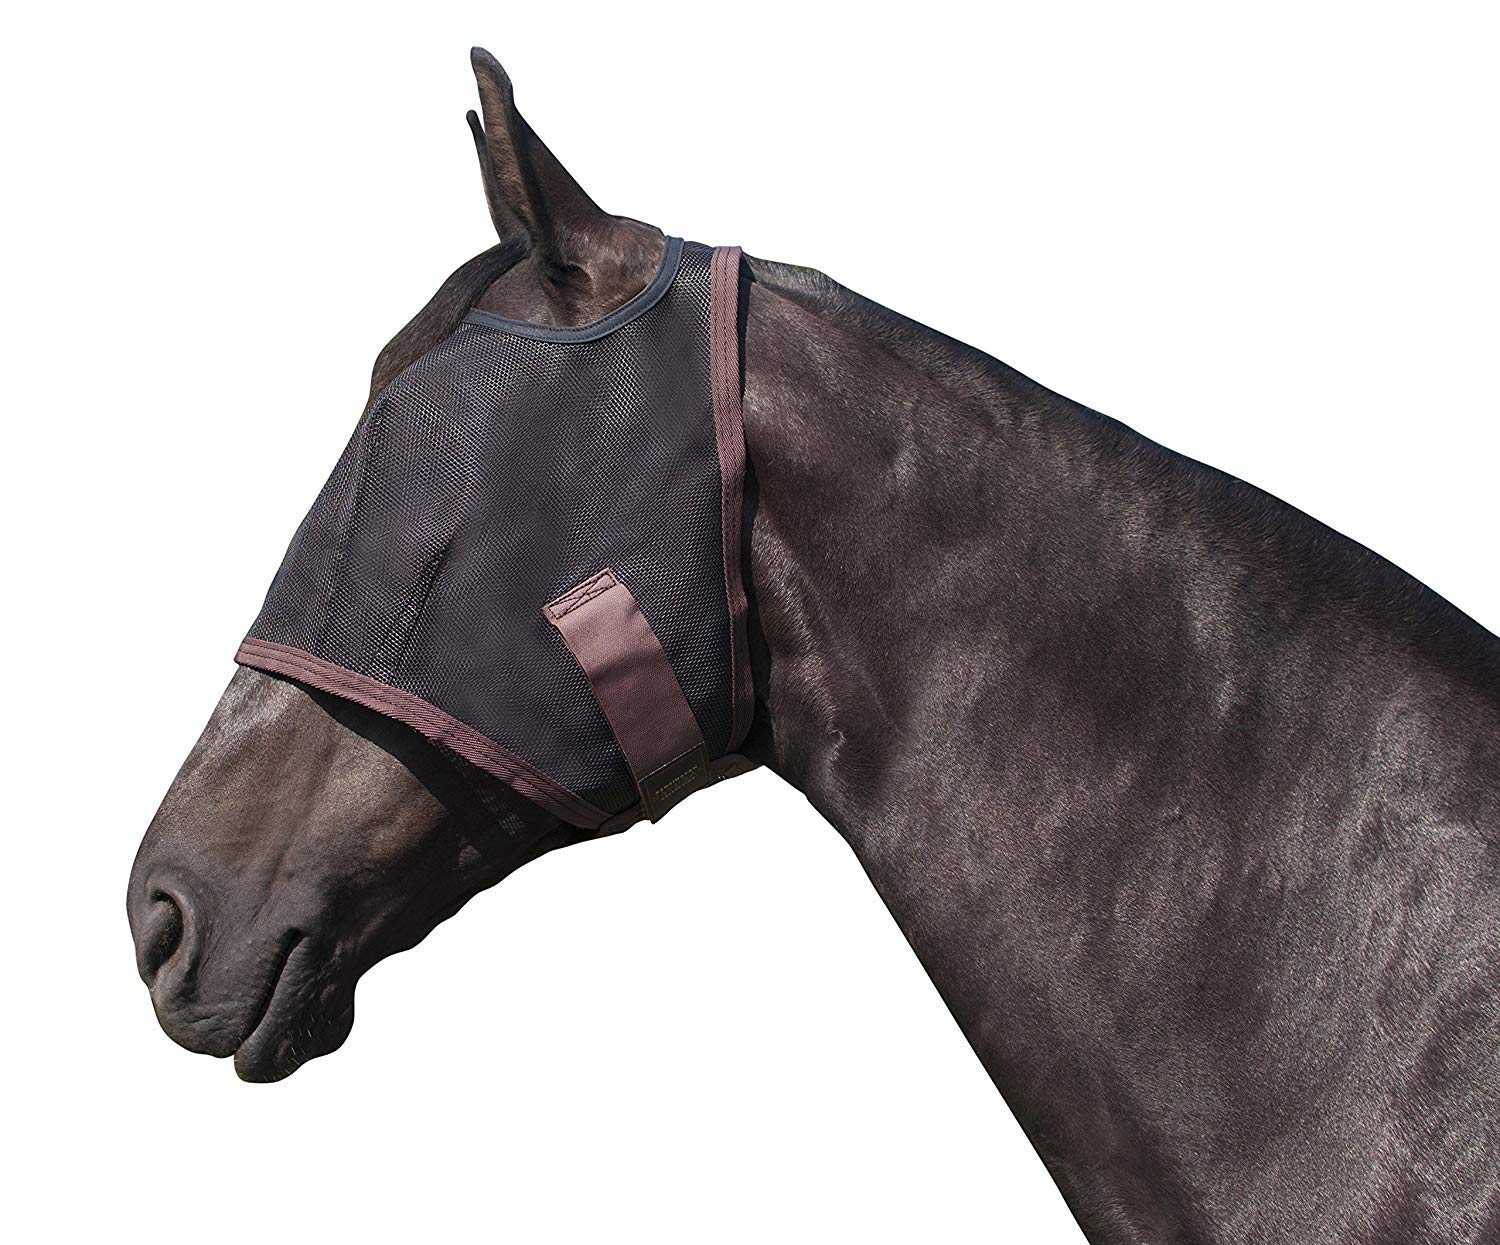 Kensington Natural Fly Mask with Web Trim - Protects Horses Face Eyes from Biting Insects and UV Rays While Allowing Full Visibility - Ears and Forelock Able to Come Through The Mask (Large, Black) by Kensington Protective Products